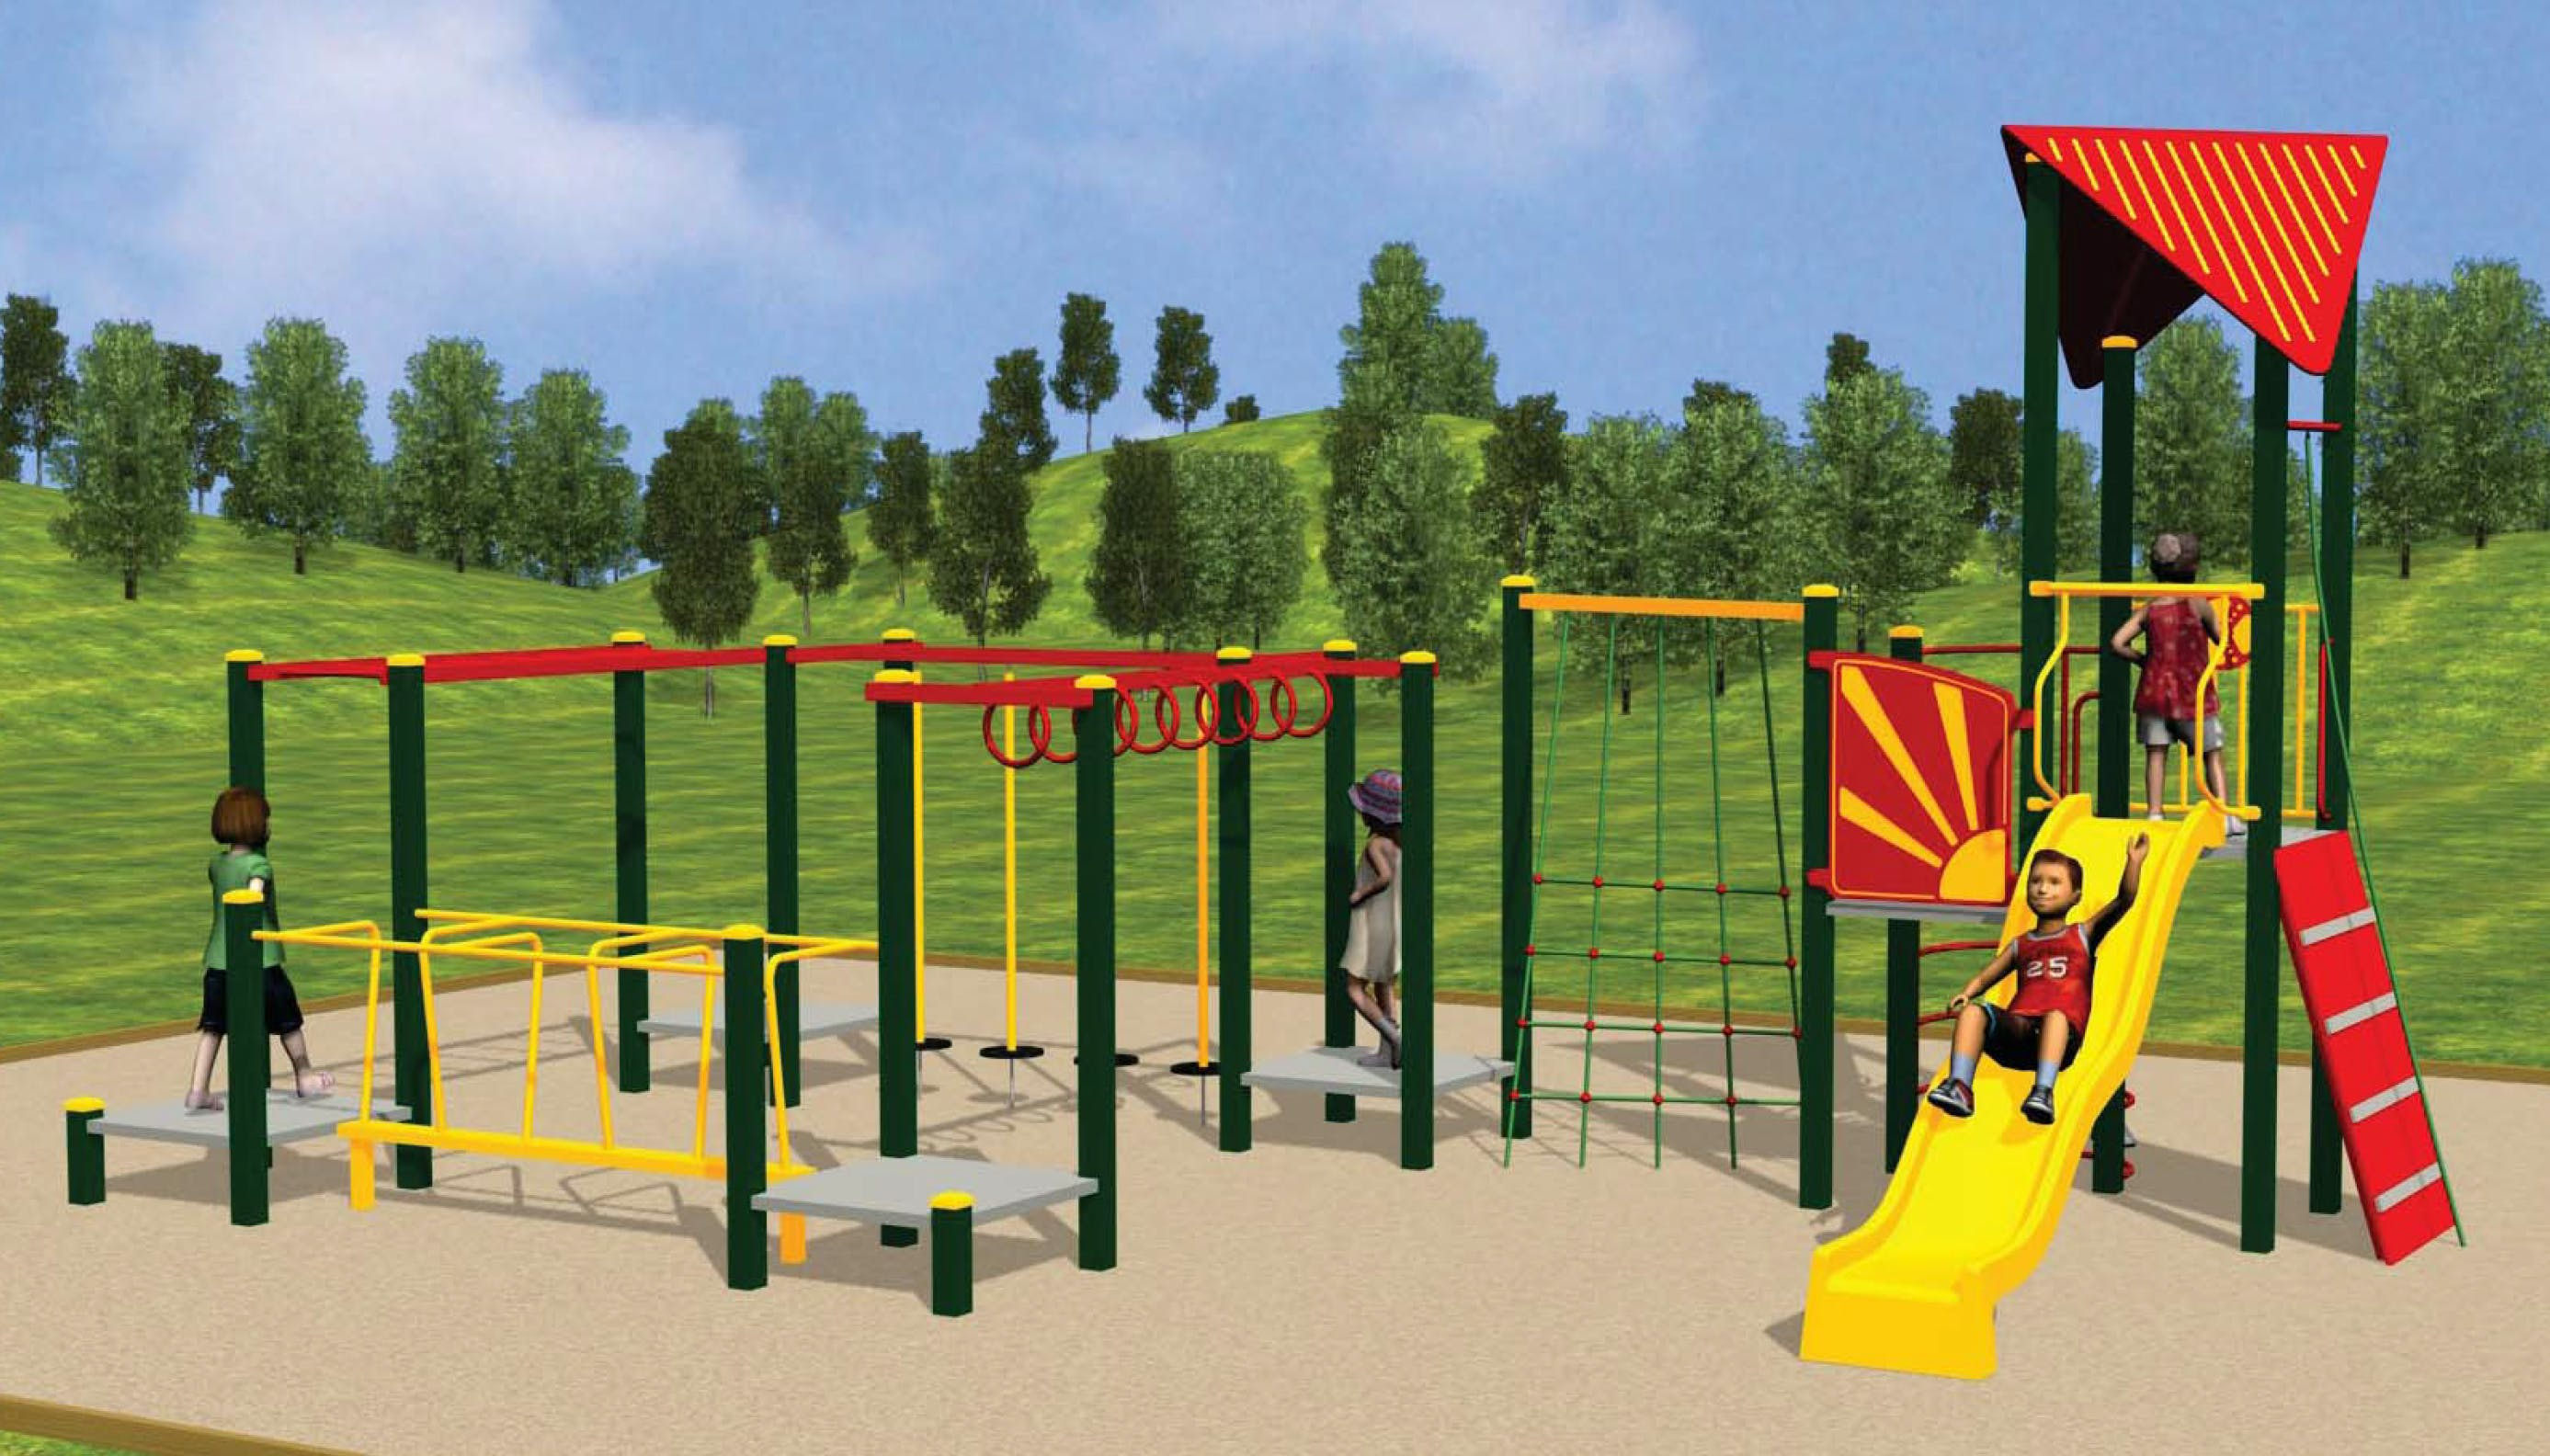 Proposed Play Unit